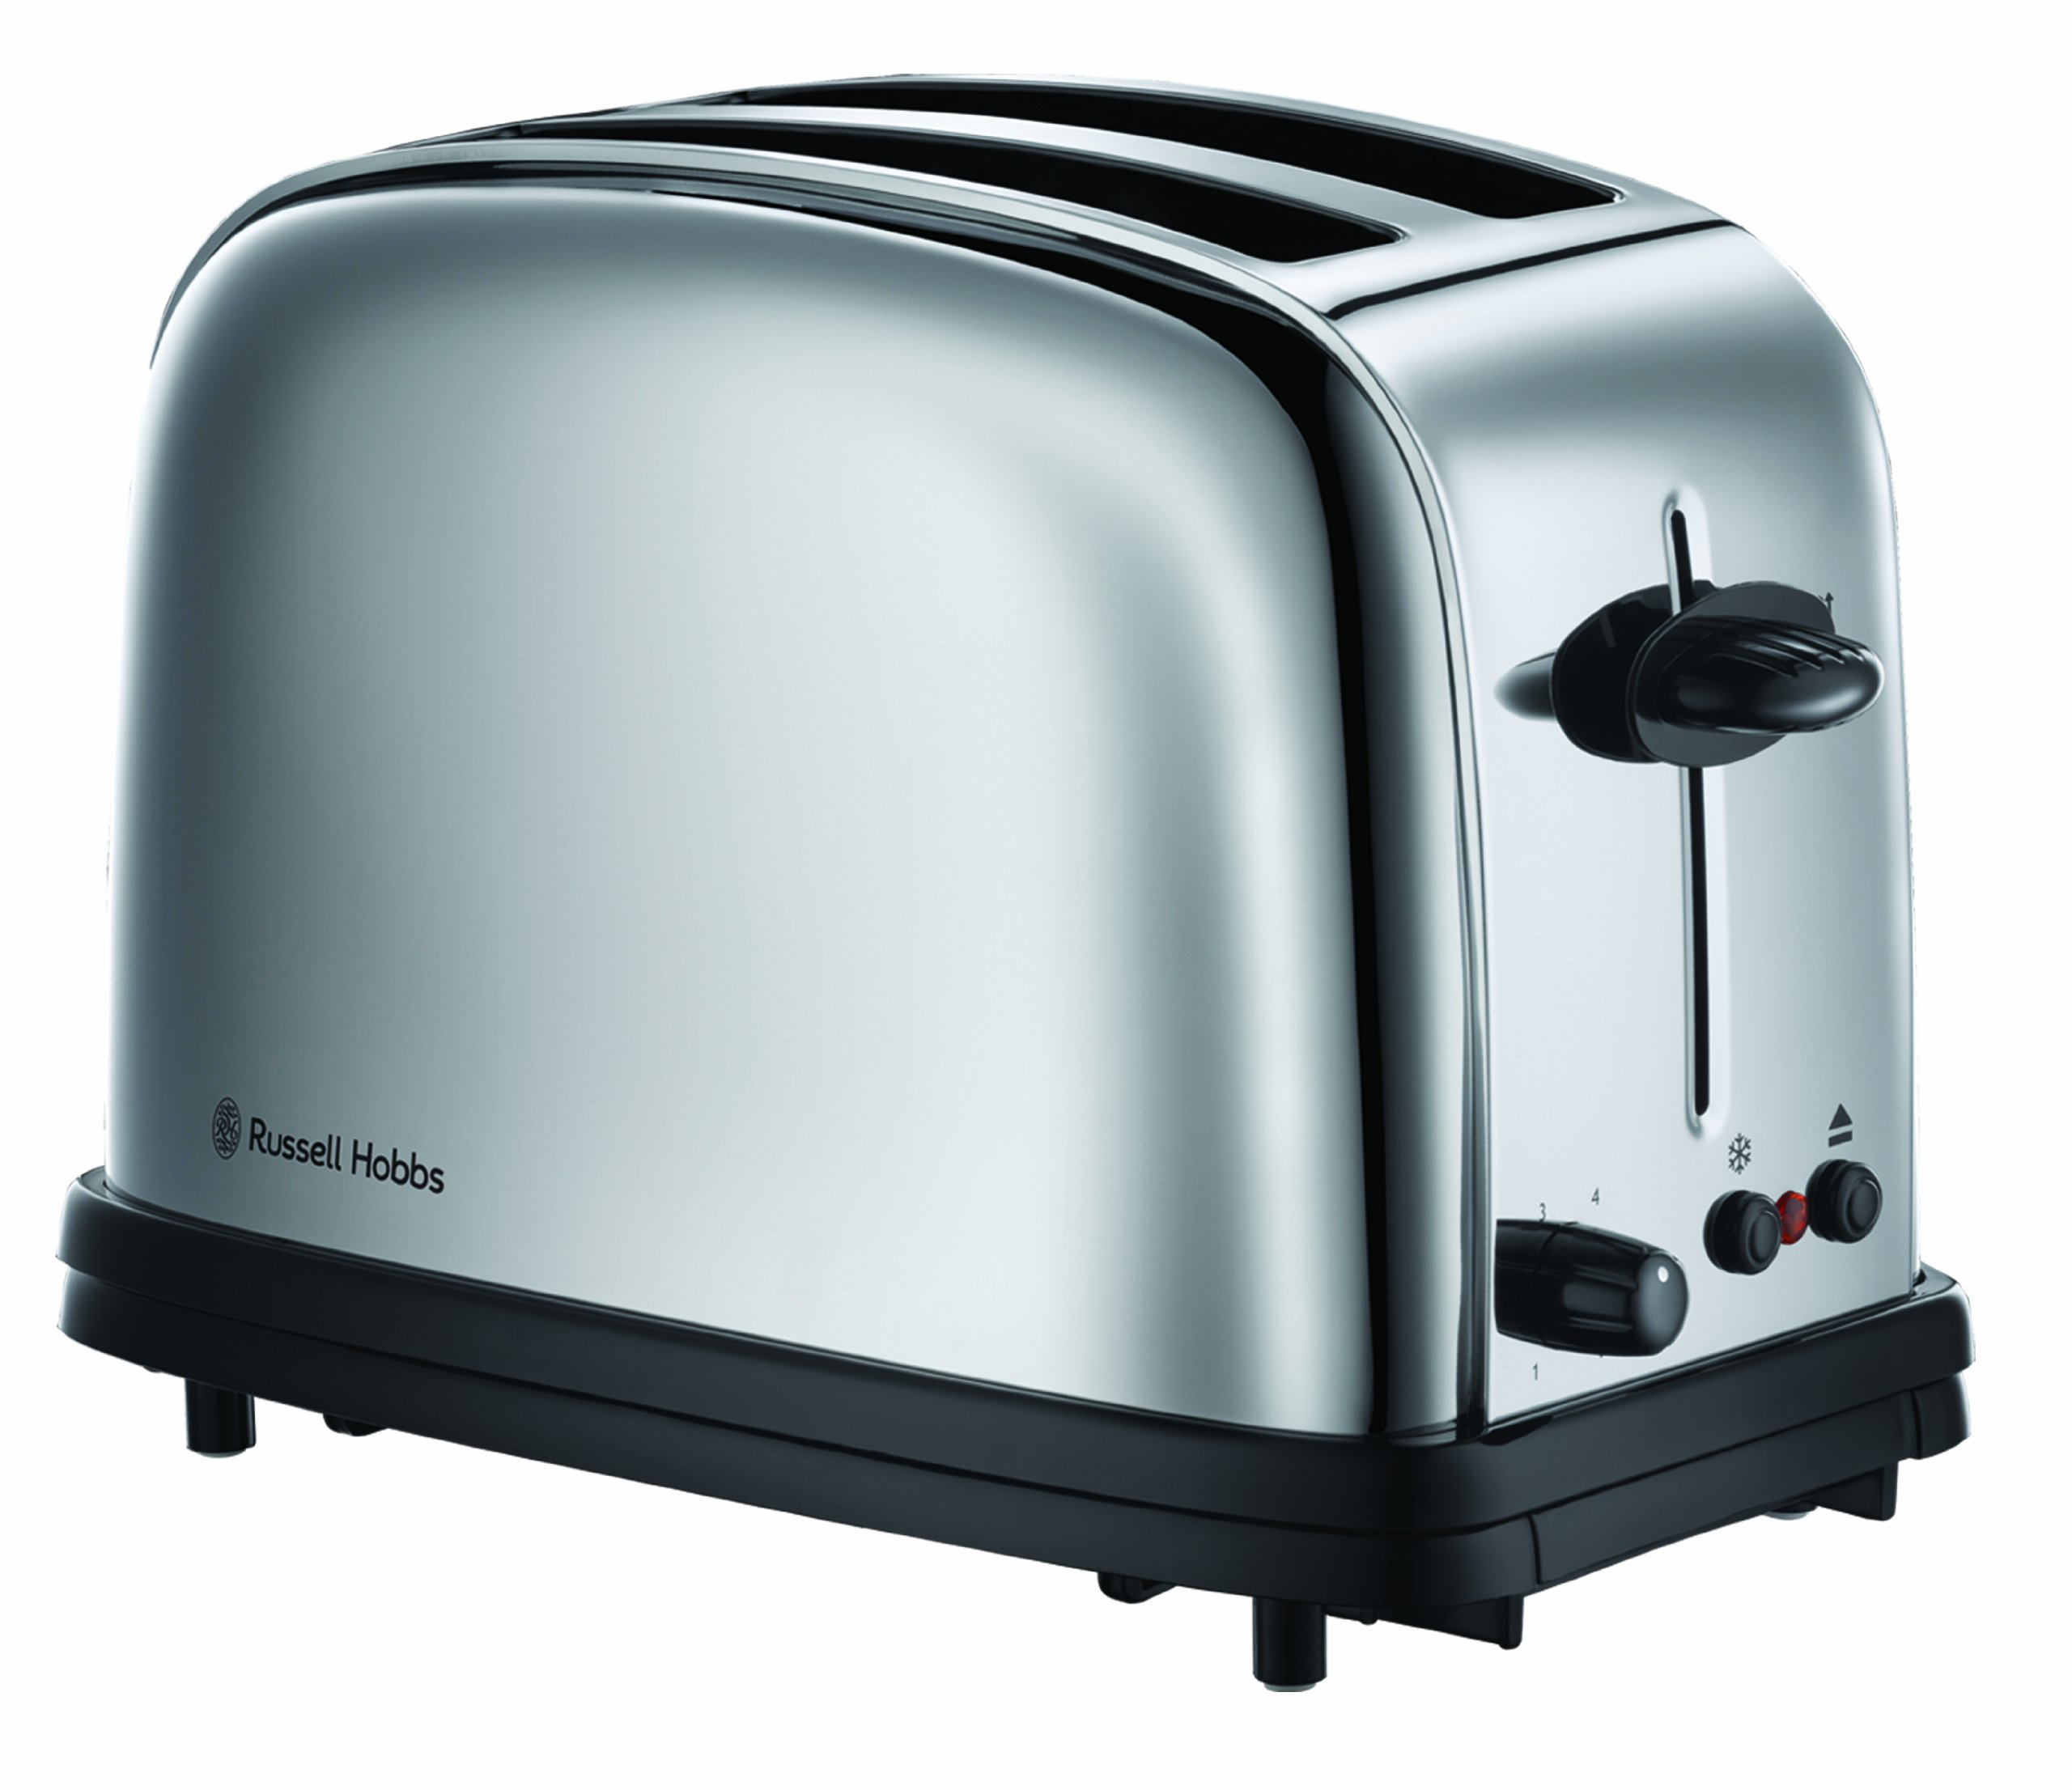 russell hobbs 20720 2 slice classic toaster polished stainless steel. Black Bedroom Furniture Sets. Home Design Ideas